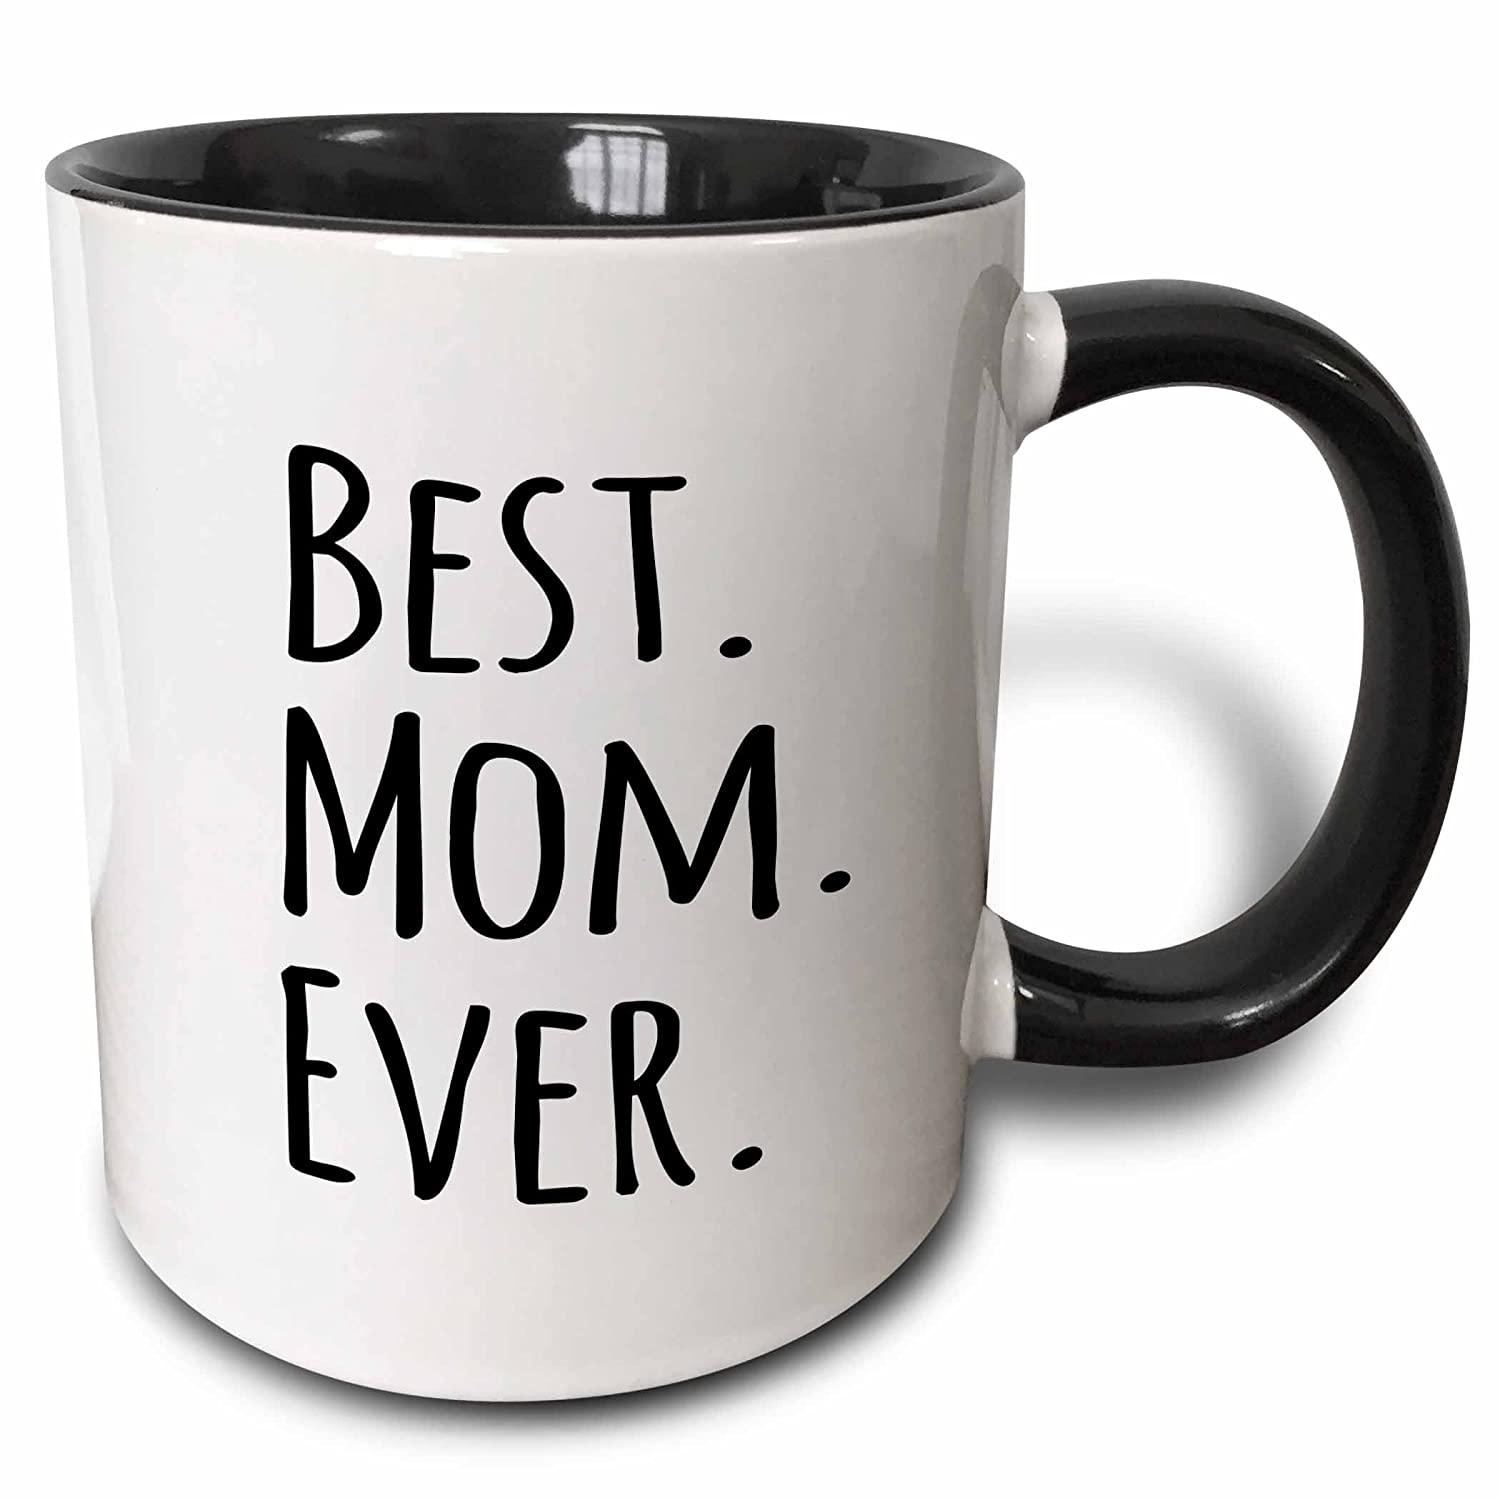 3dRose 3dRose Best Mom Ever - Gifts for parents - Good for Mothers day - black text - Two Tone Black Mug, 11oz (mug_151530_4), Black/White 3EROS